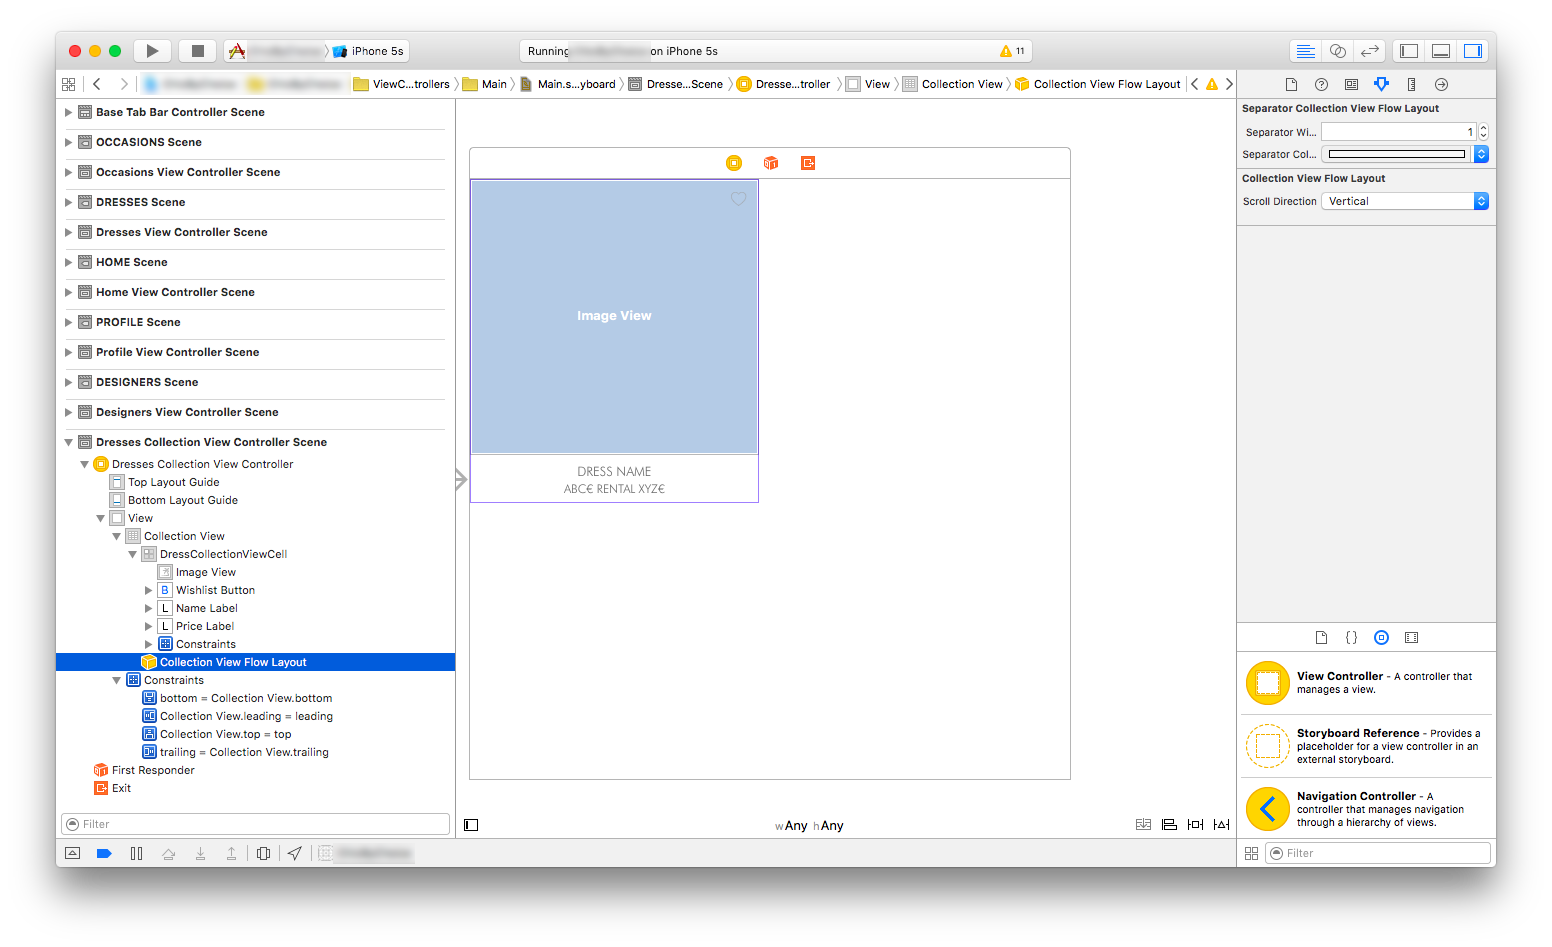 SeparatorCollectionViewFlowLayout on CocoaPods org